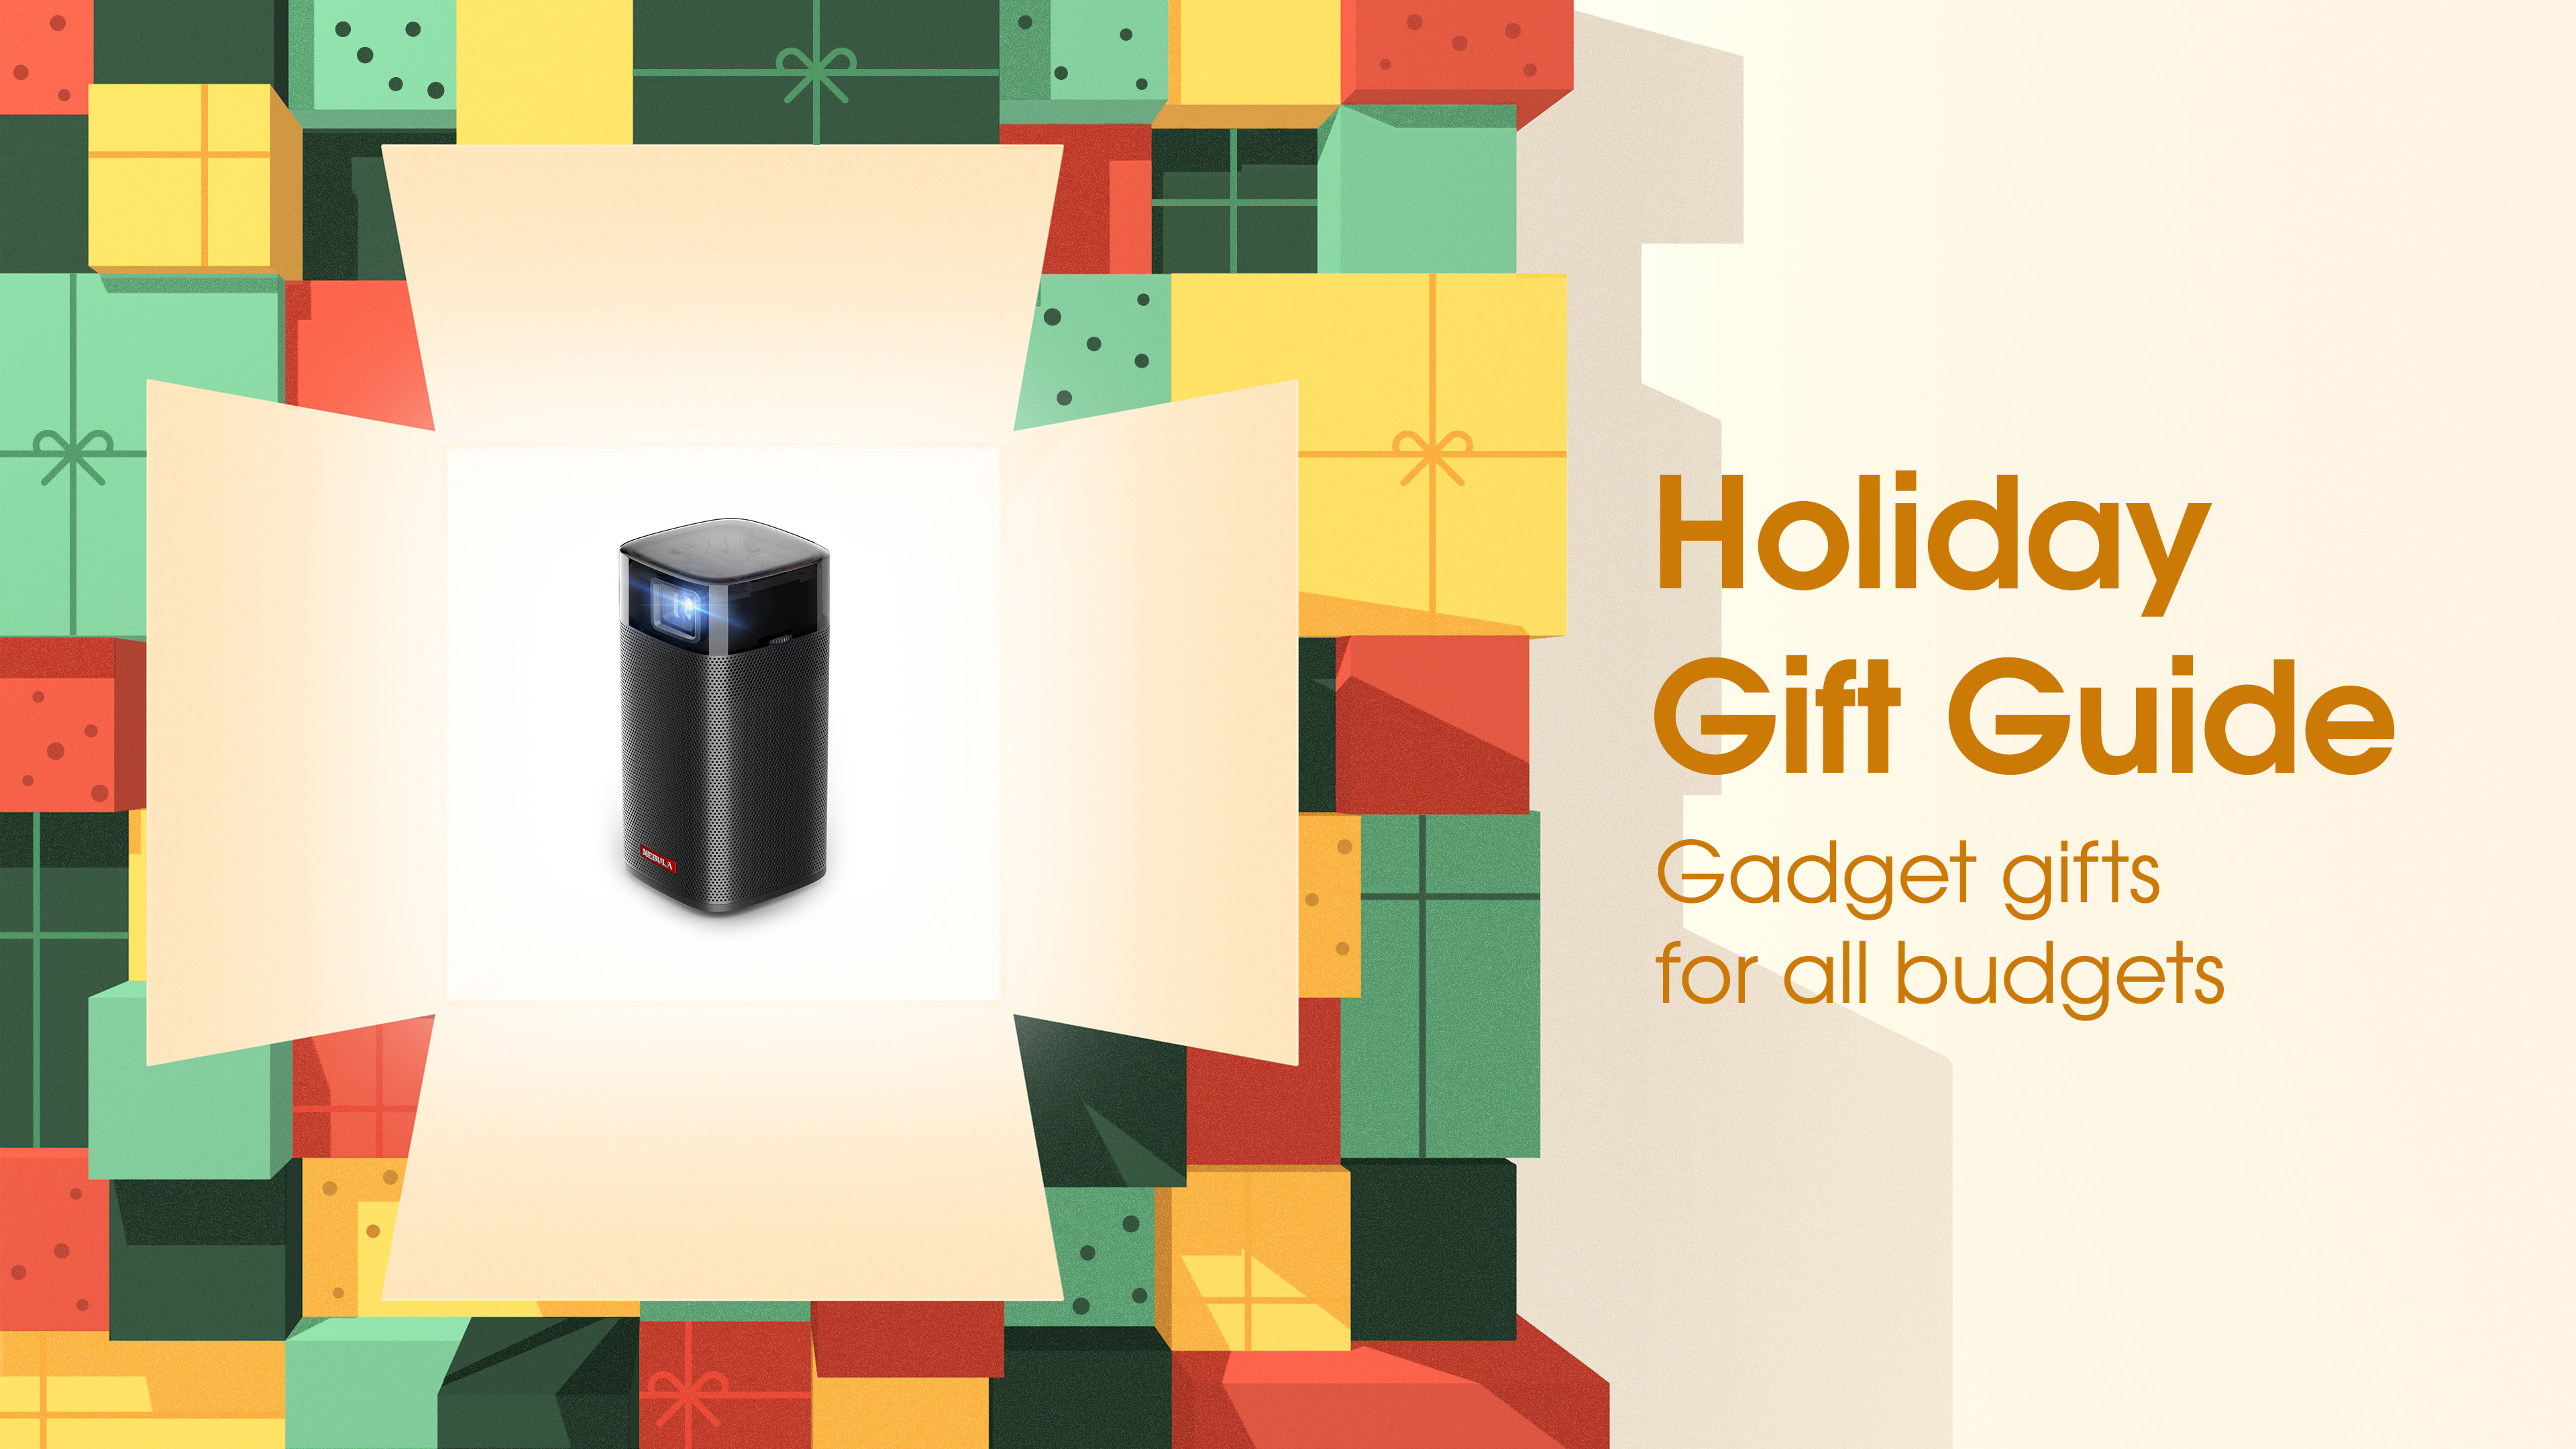 photo of Gift Guide: Gadget gifts for all budgets image